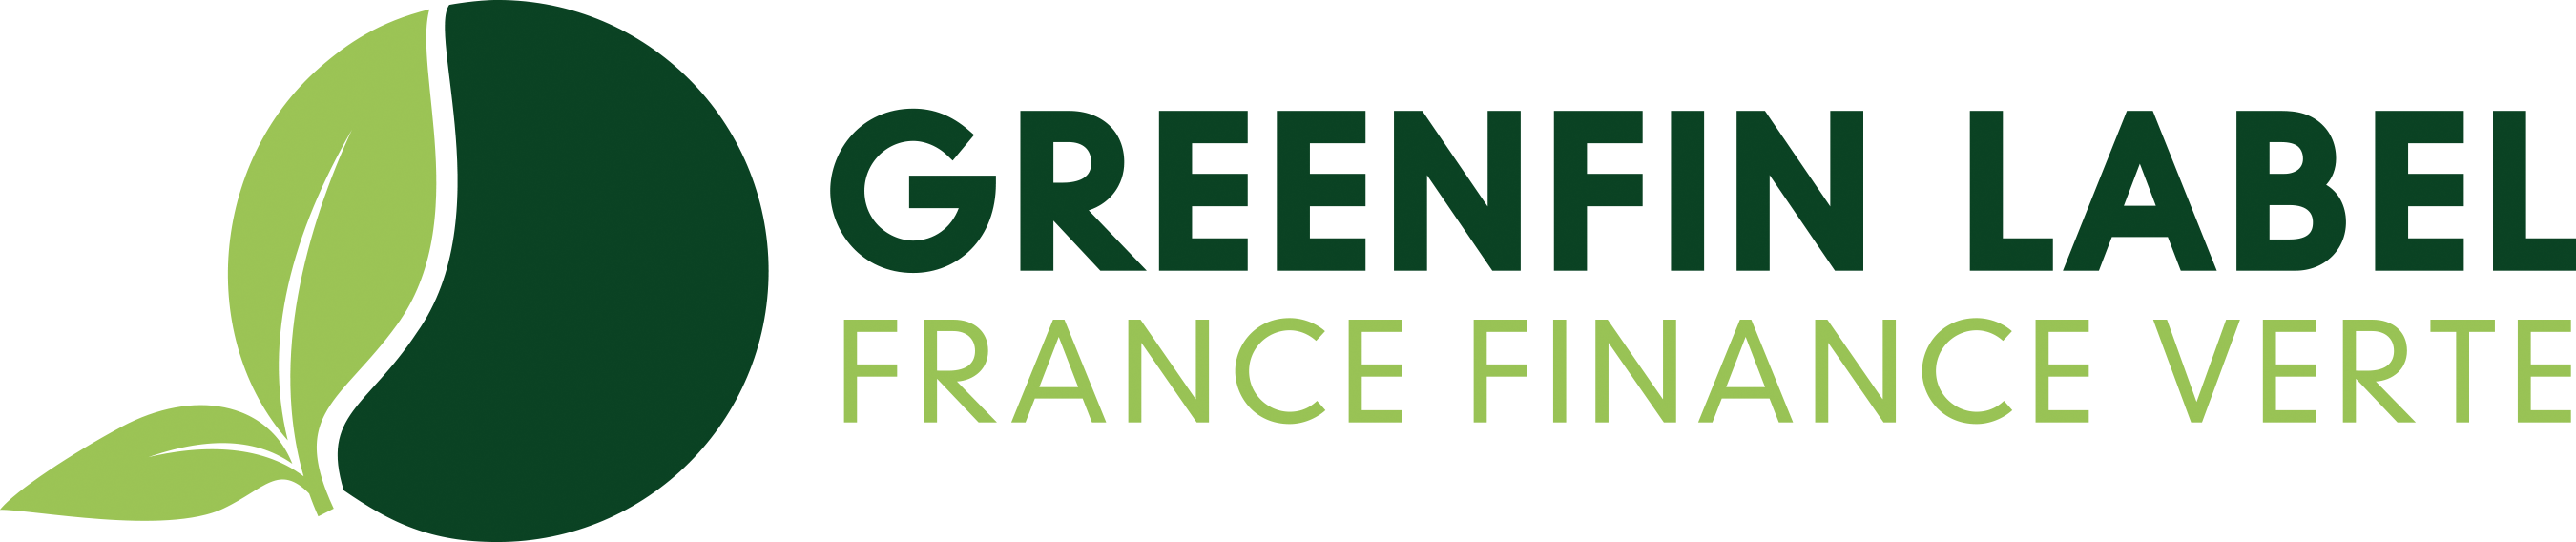 Greenfin